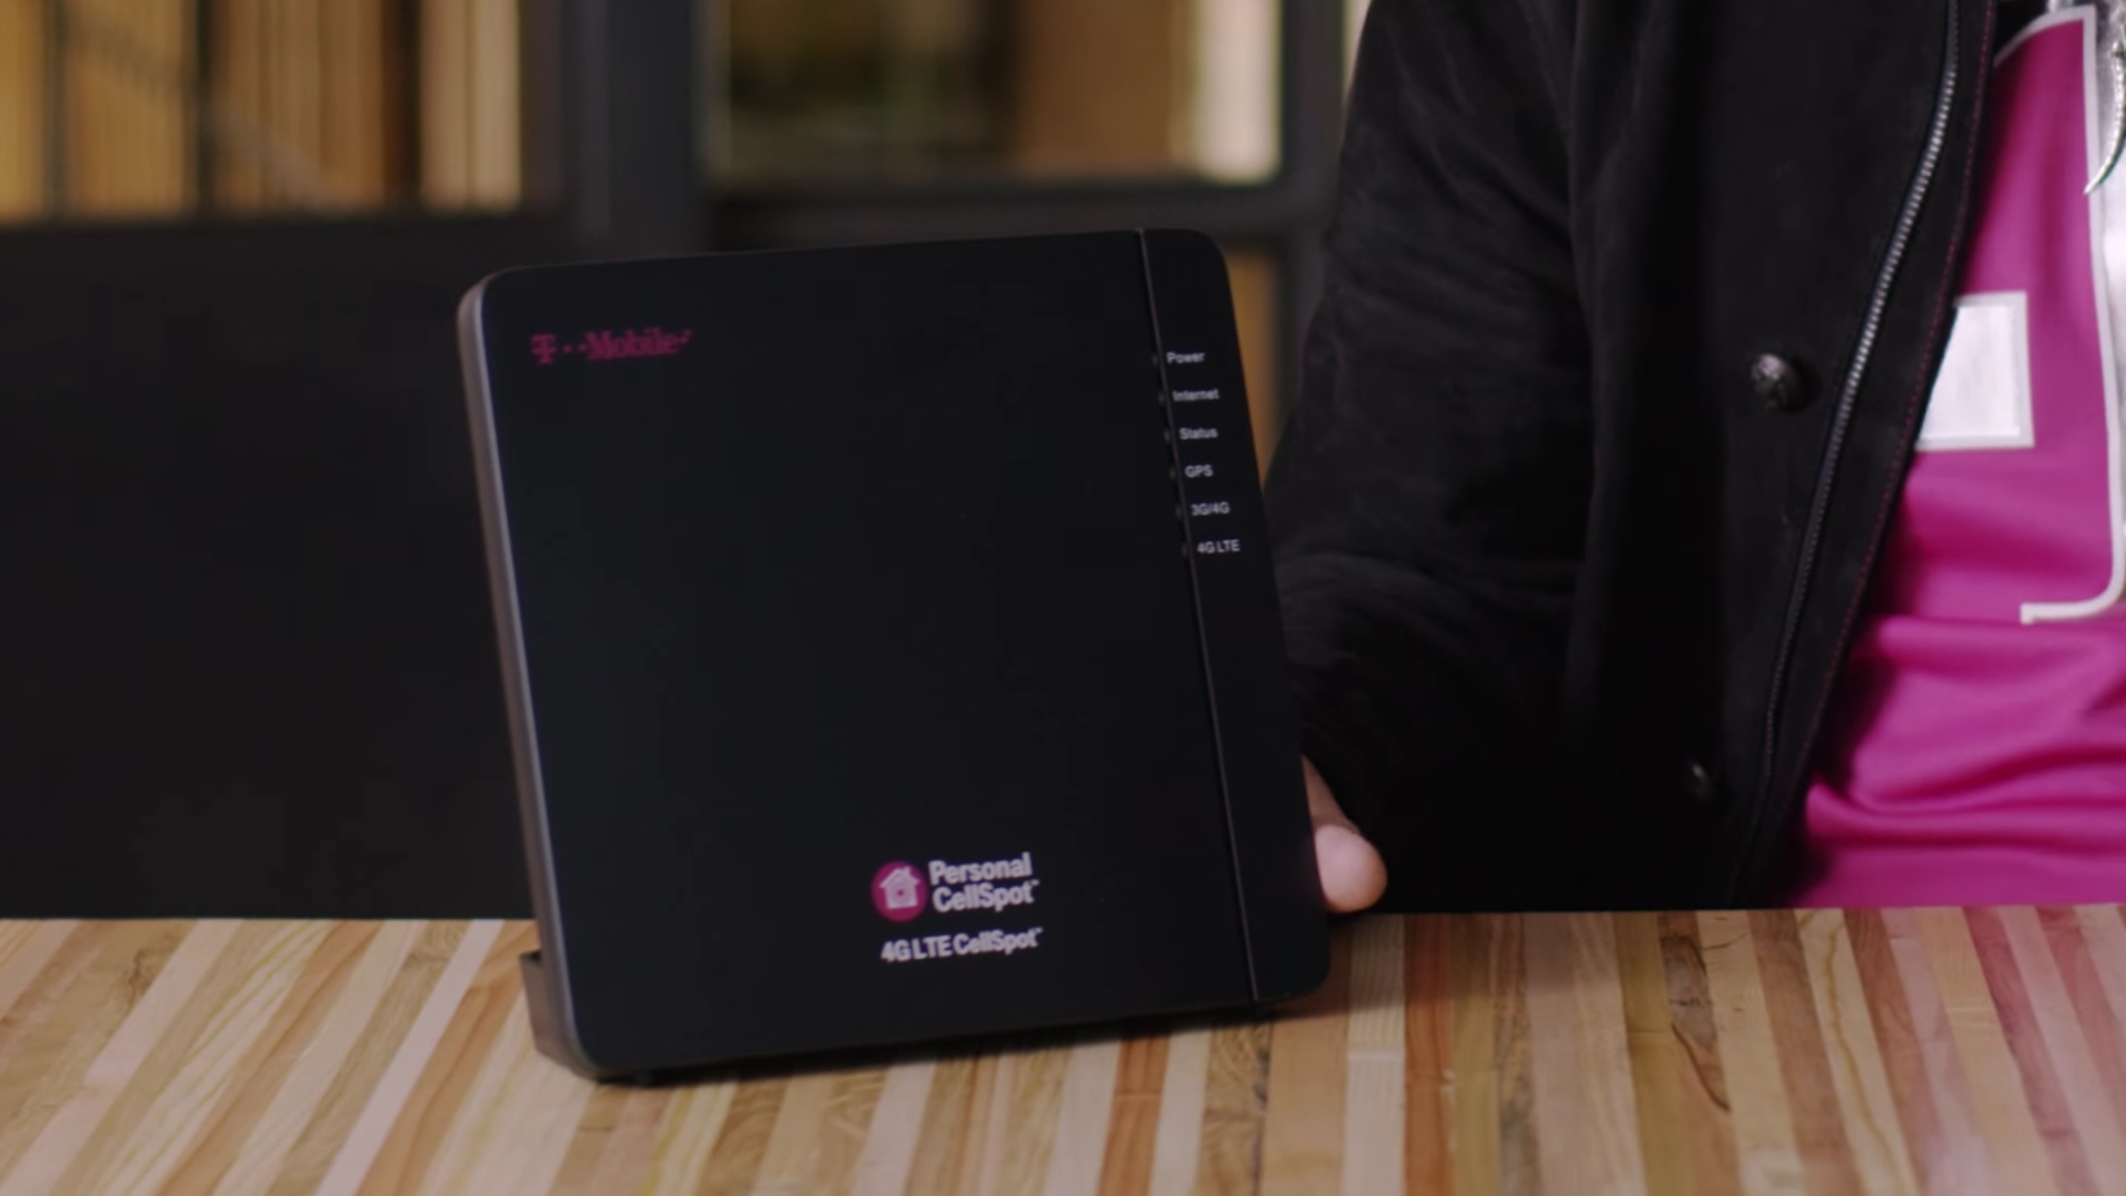 T-Mobile announces 4G LTE tower inside a router, available